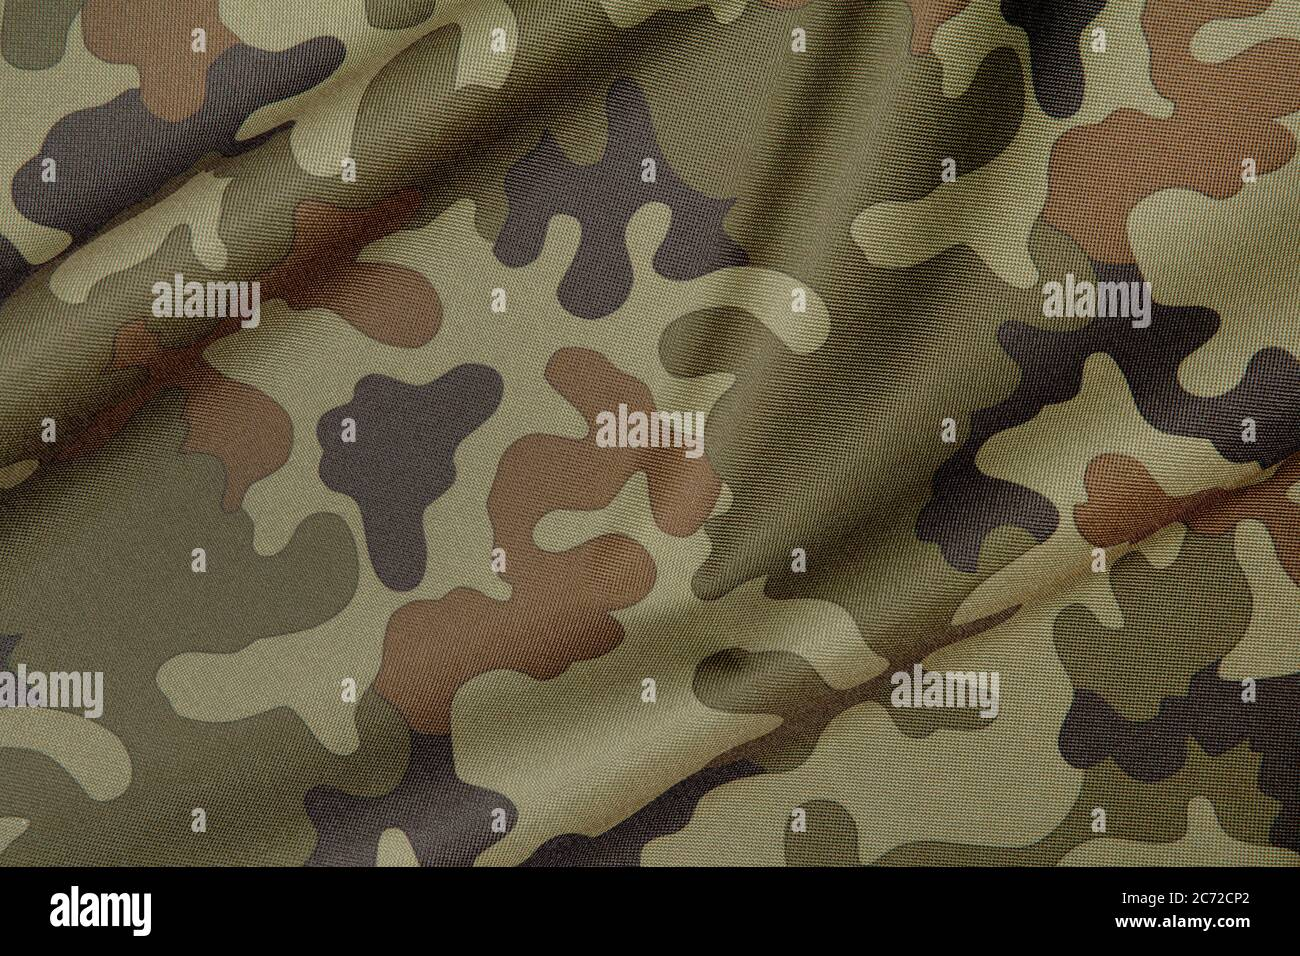 Military fabric Vintage fabric army Military uniform Military surplus Vintage military Army fabric Vintage wool fabric Dark gray fabric